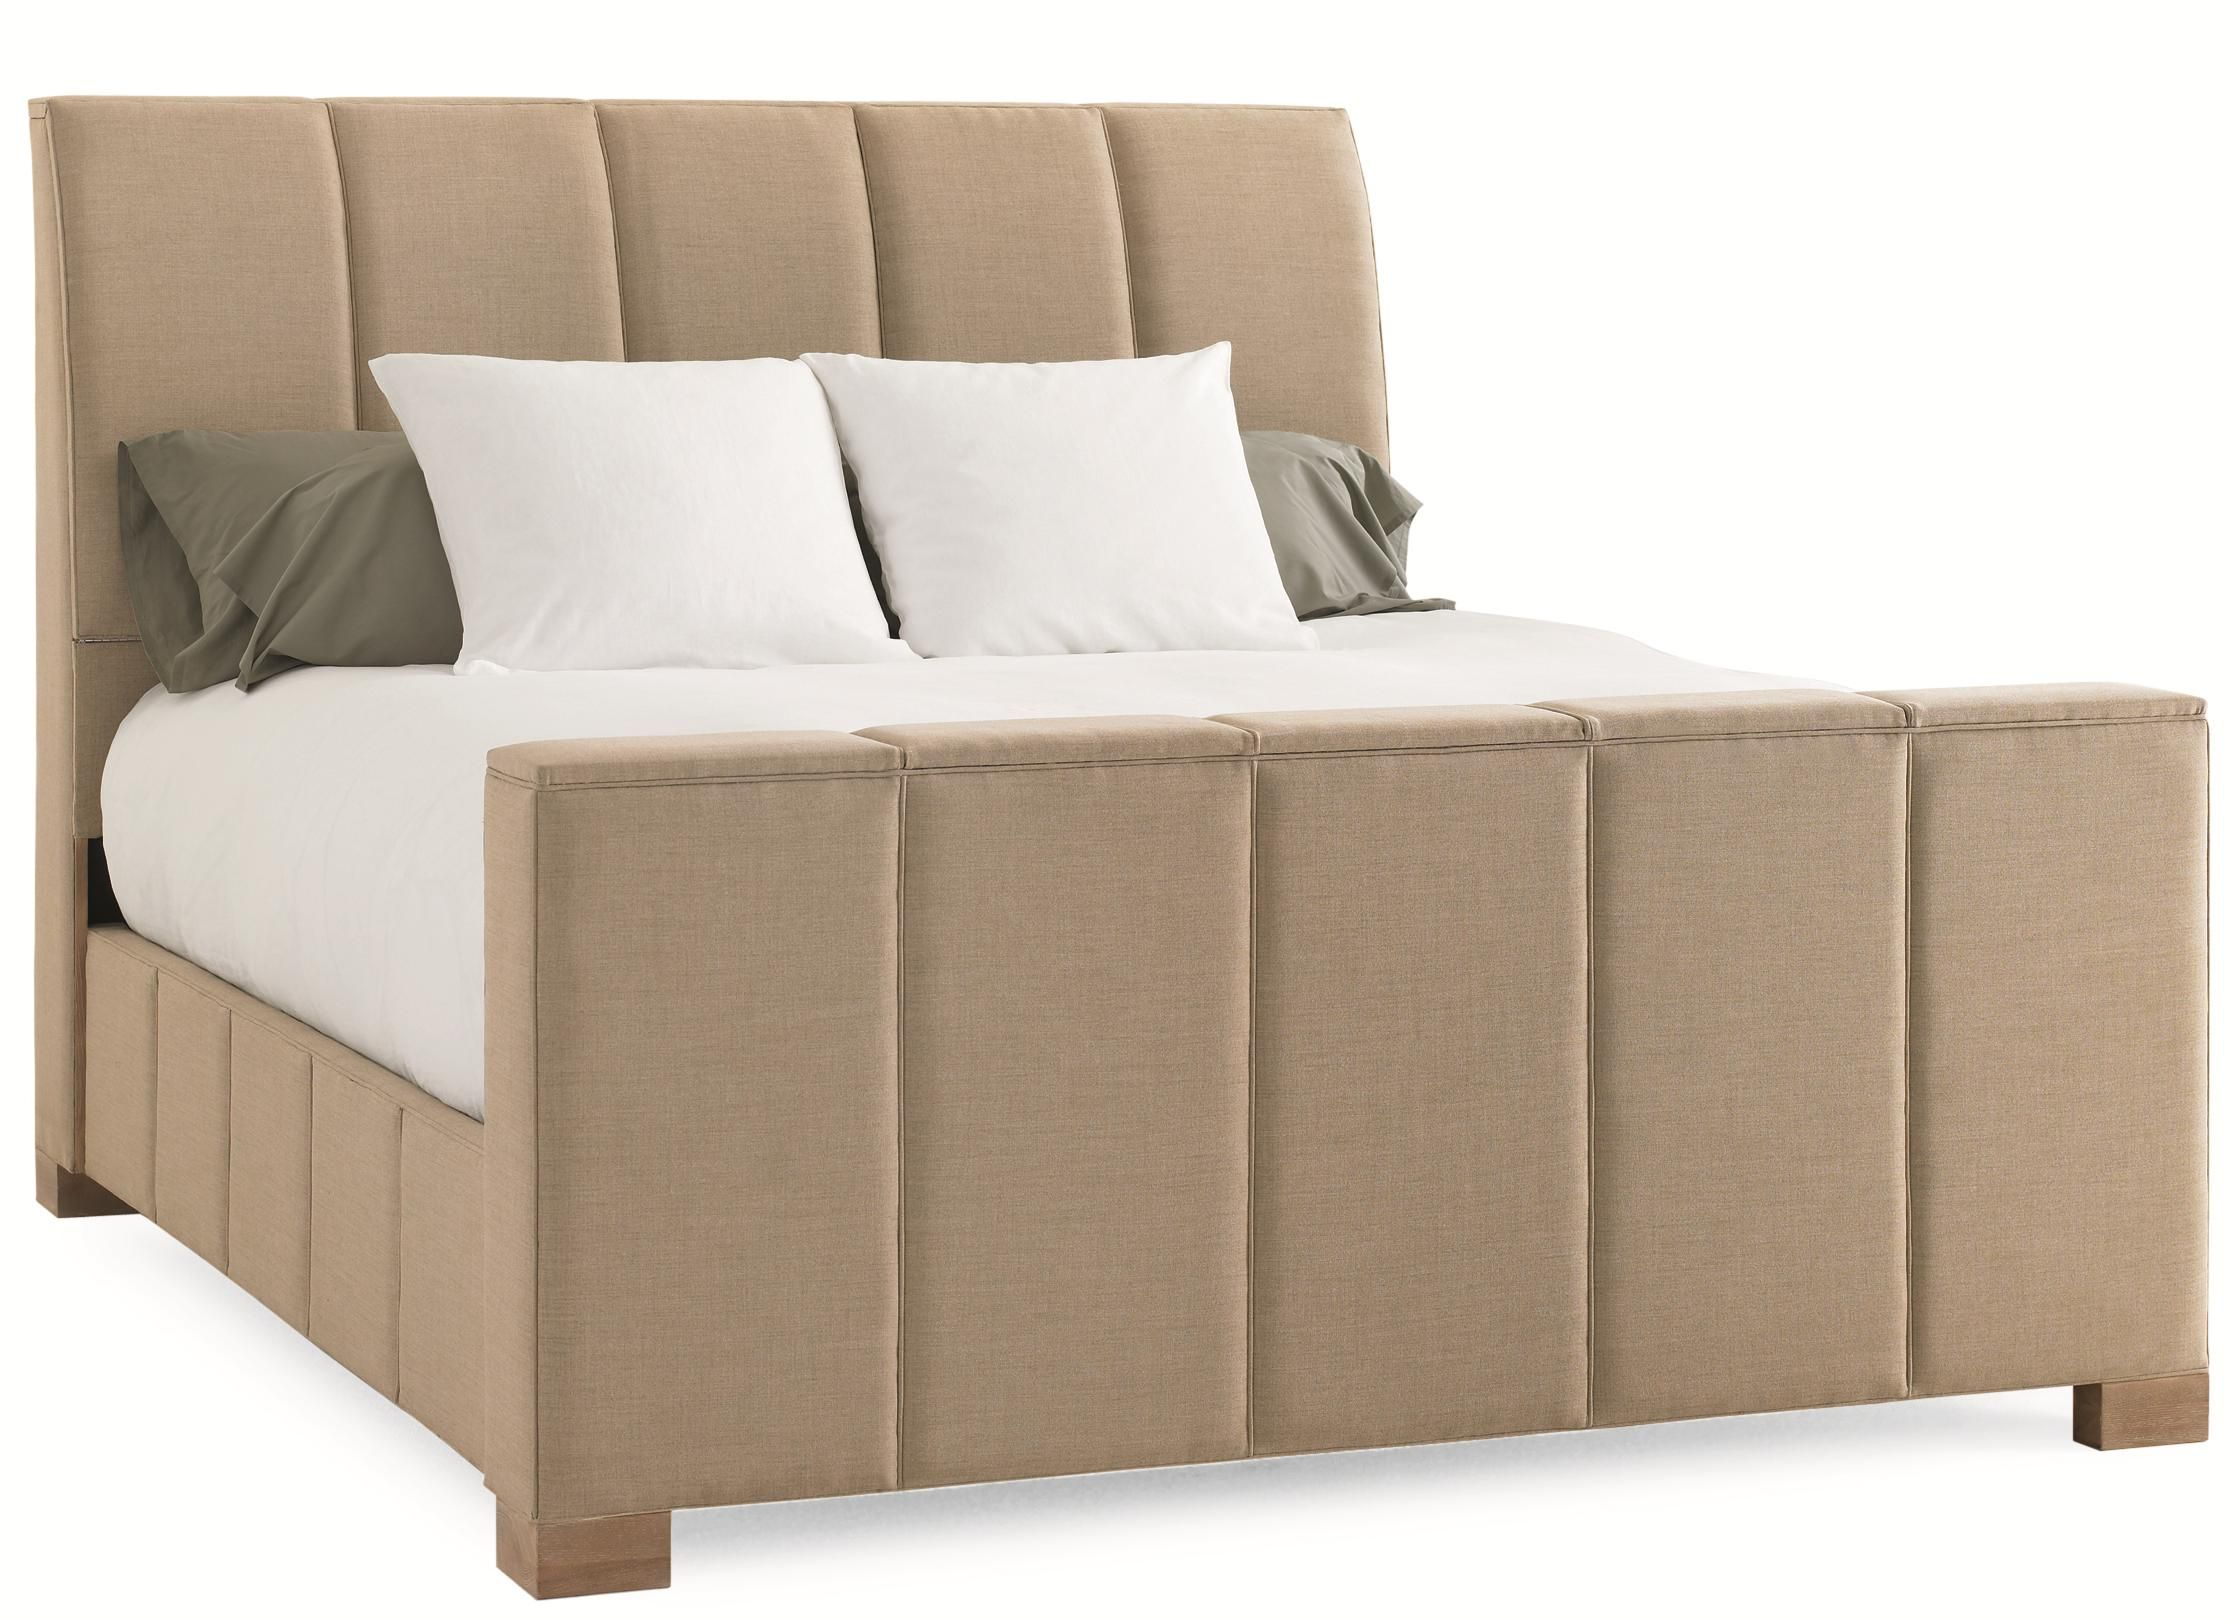 The perfect bed for channel surfers Furniture, Quality